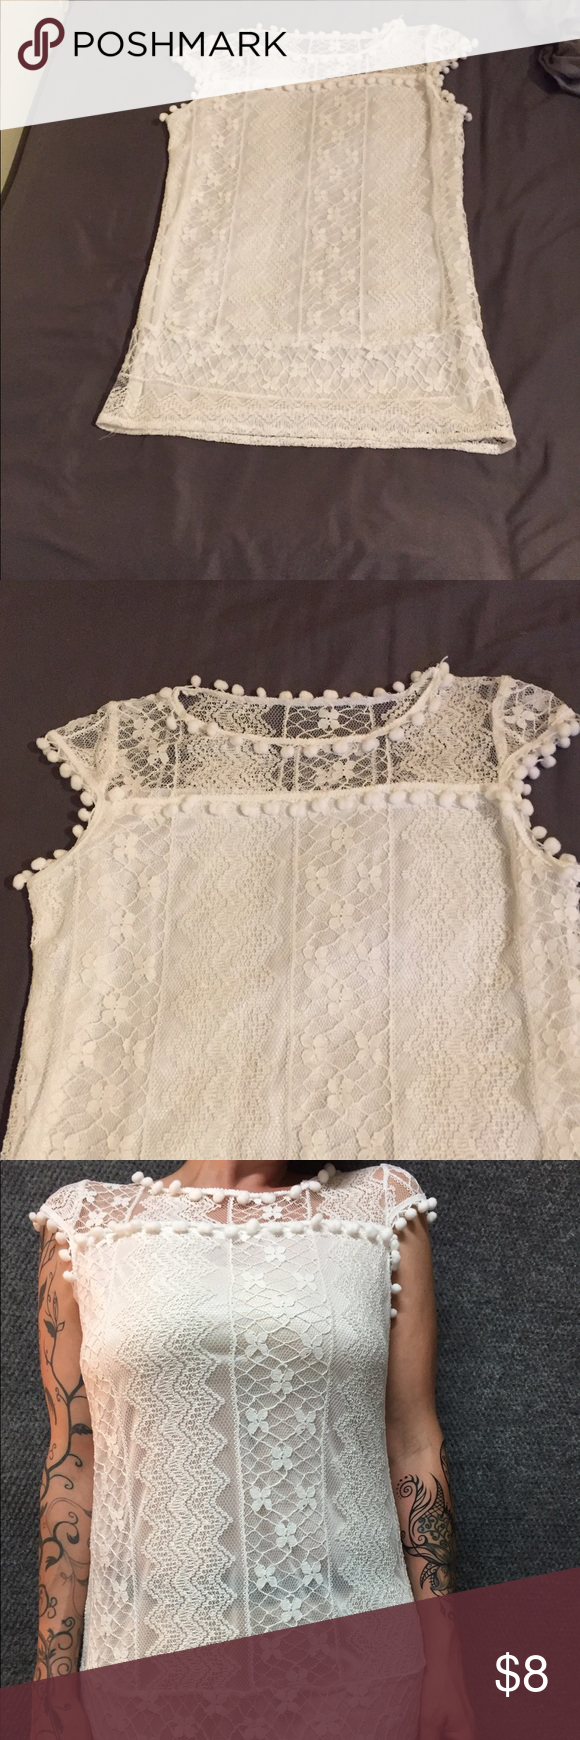 Lace dress cover up  Summer DressCoverUp Very Thin White Lace Dress Recommend use as A